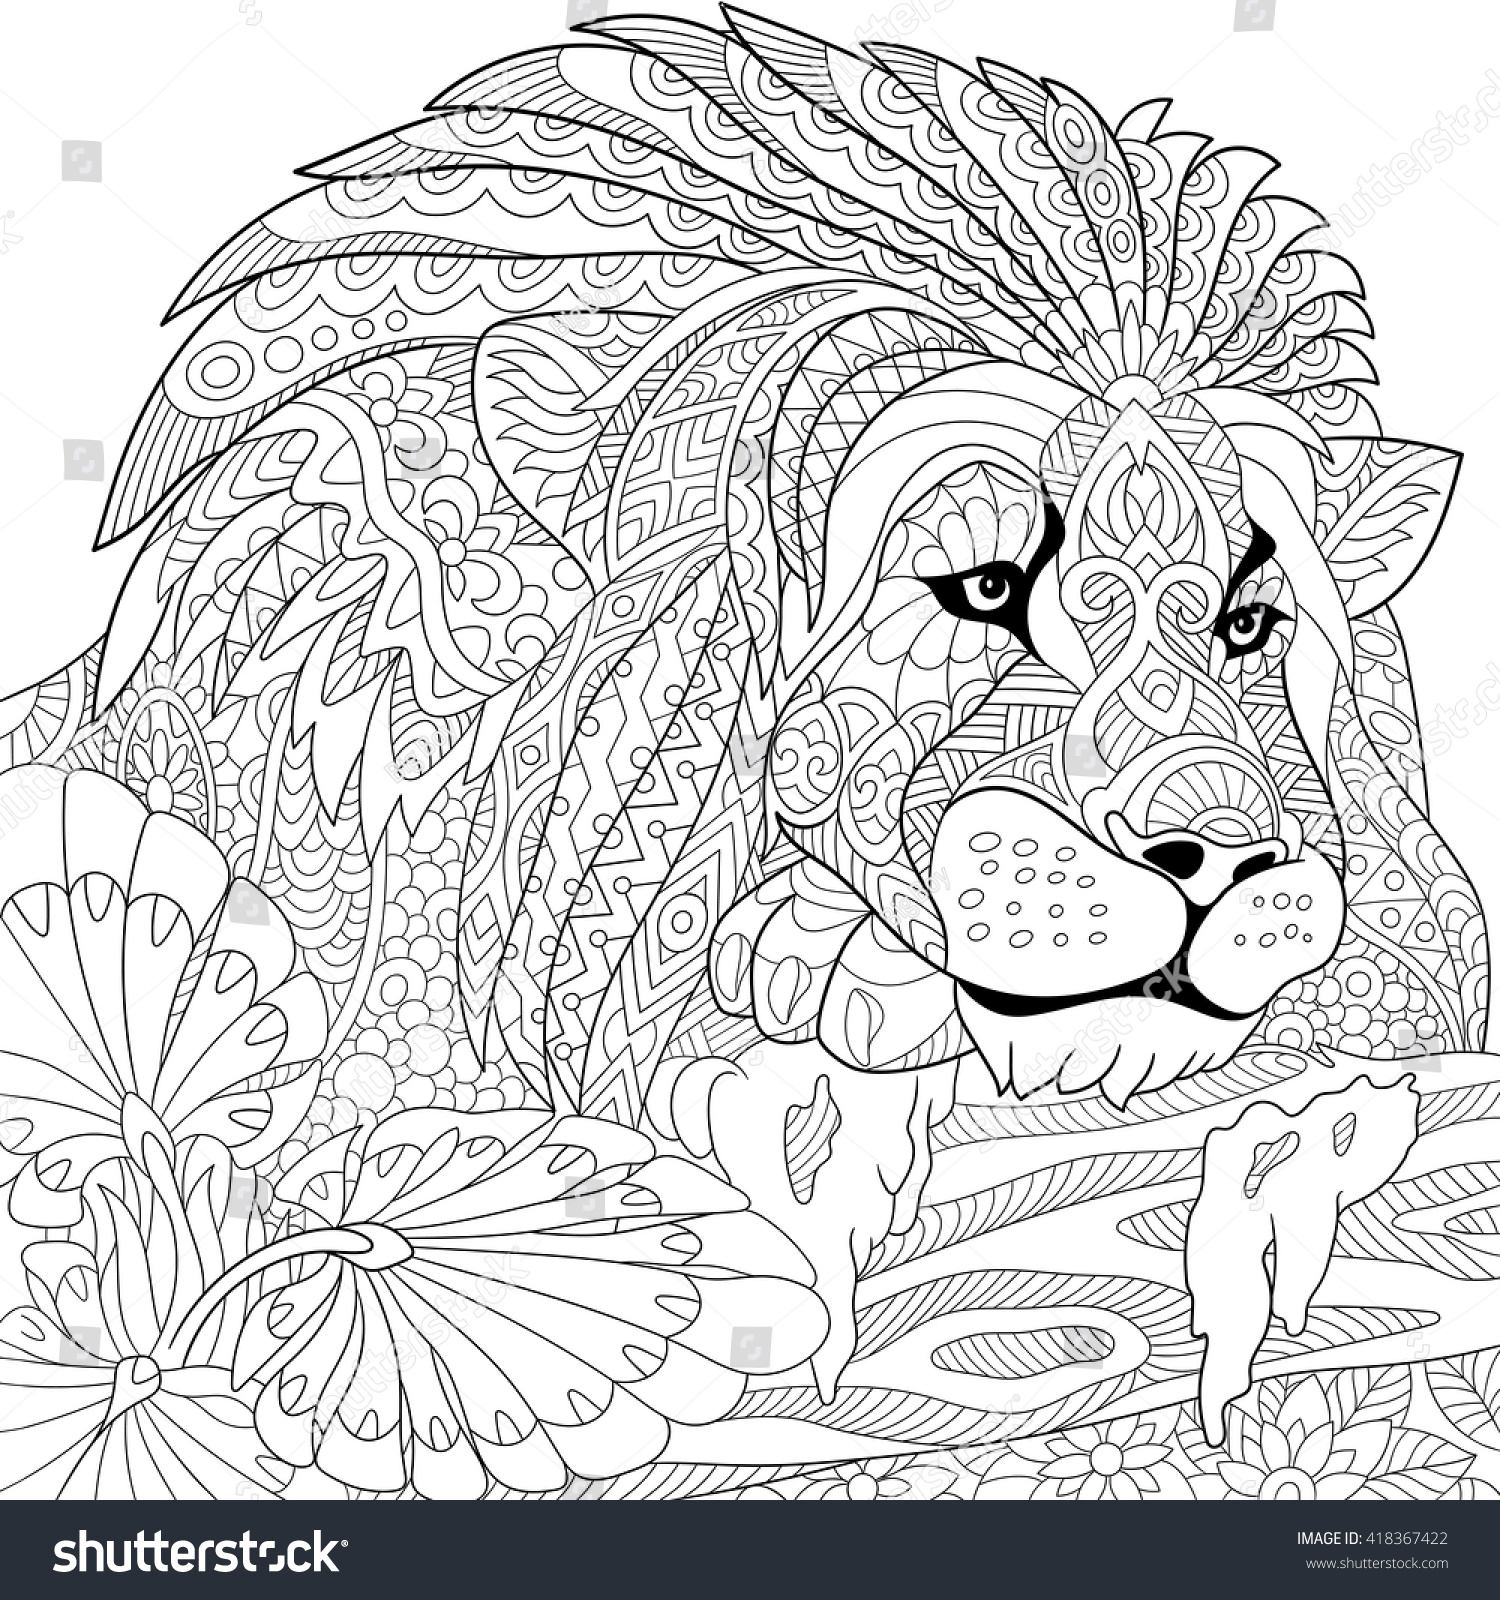 Zentangle Stylized Cartoon Lion Wild Cat Stock Vector